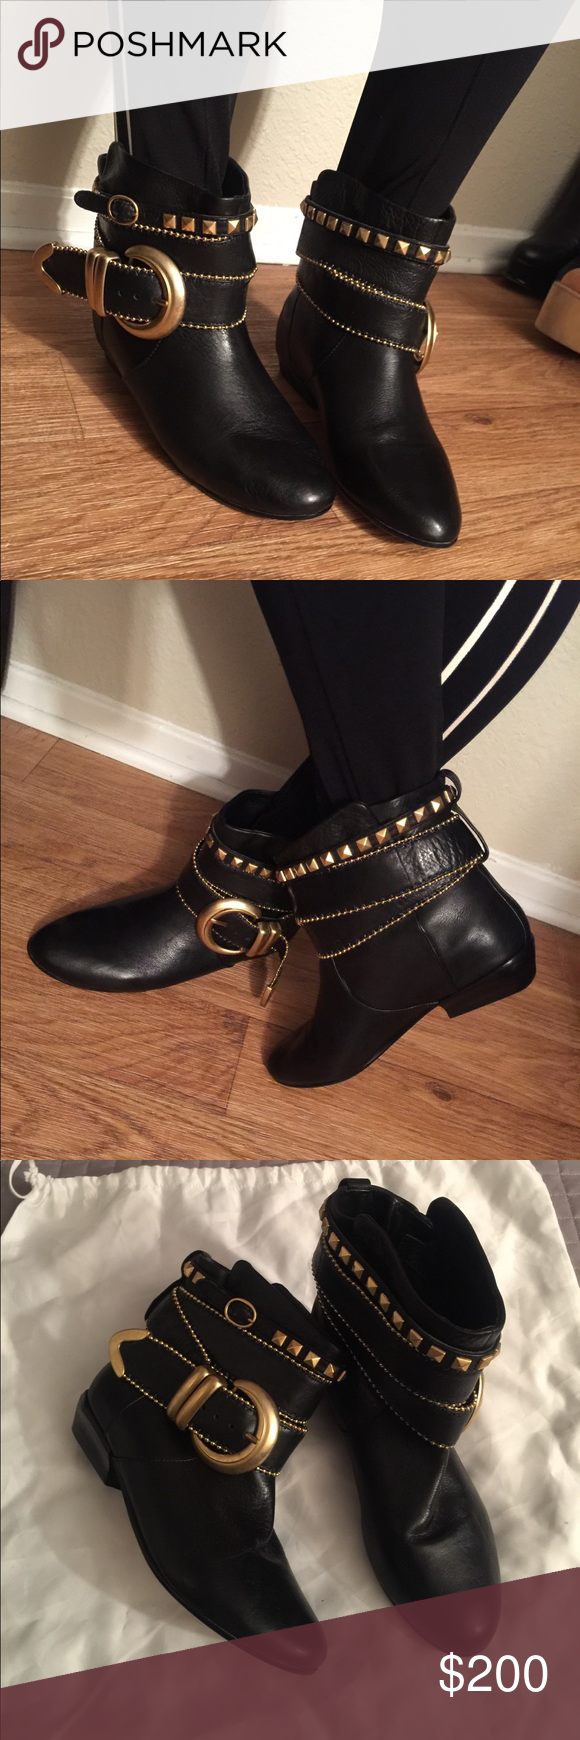 Dolce Vita RARE FIND! Casual ankle boot with multi strap detail complete with buckles and punky inspired studs. Used a couple of times. Has tons of life left. No major damage or flaws. Size 6 but could also fit size 6.5 Dolce Vita Shoes Ankle Boots & Booties